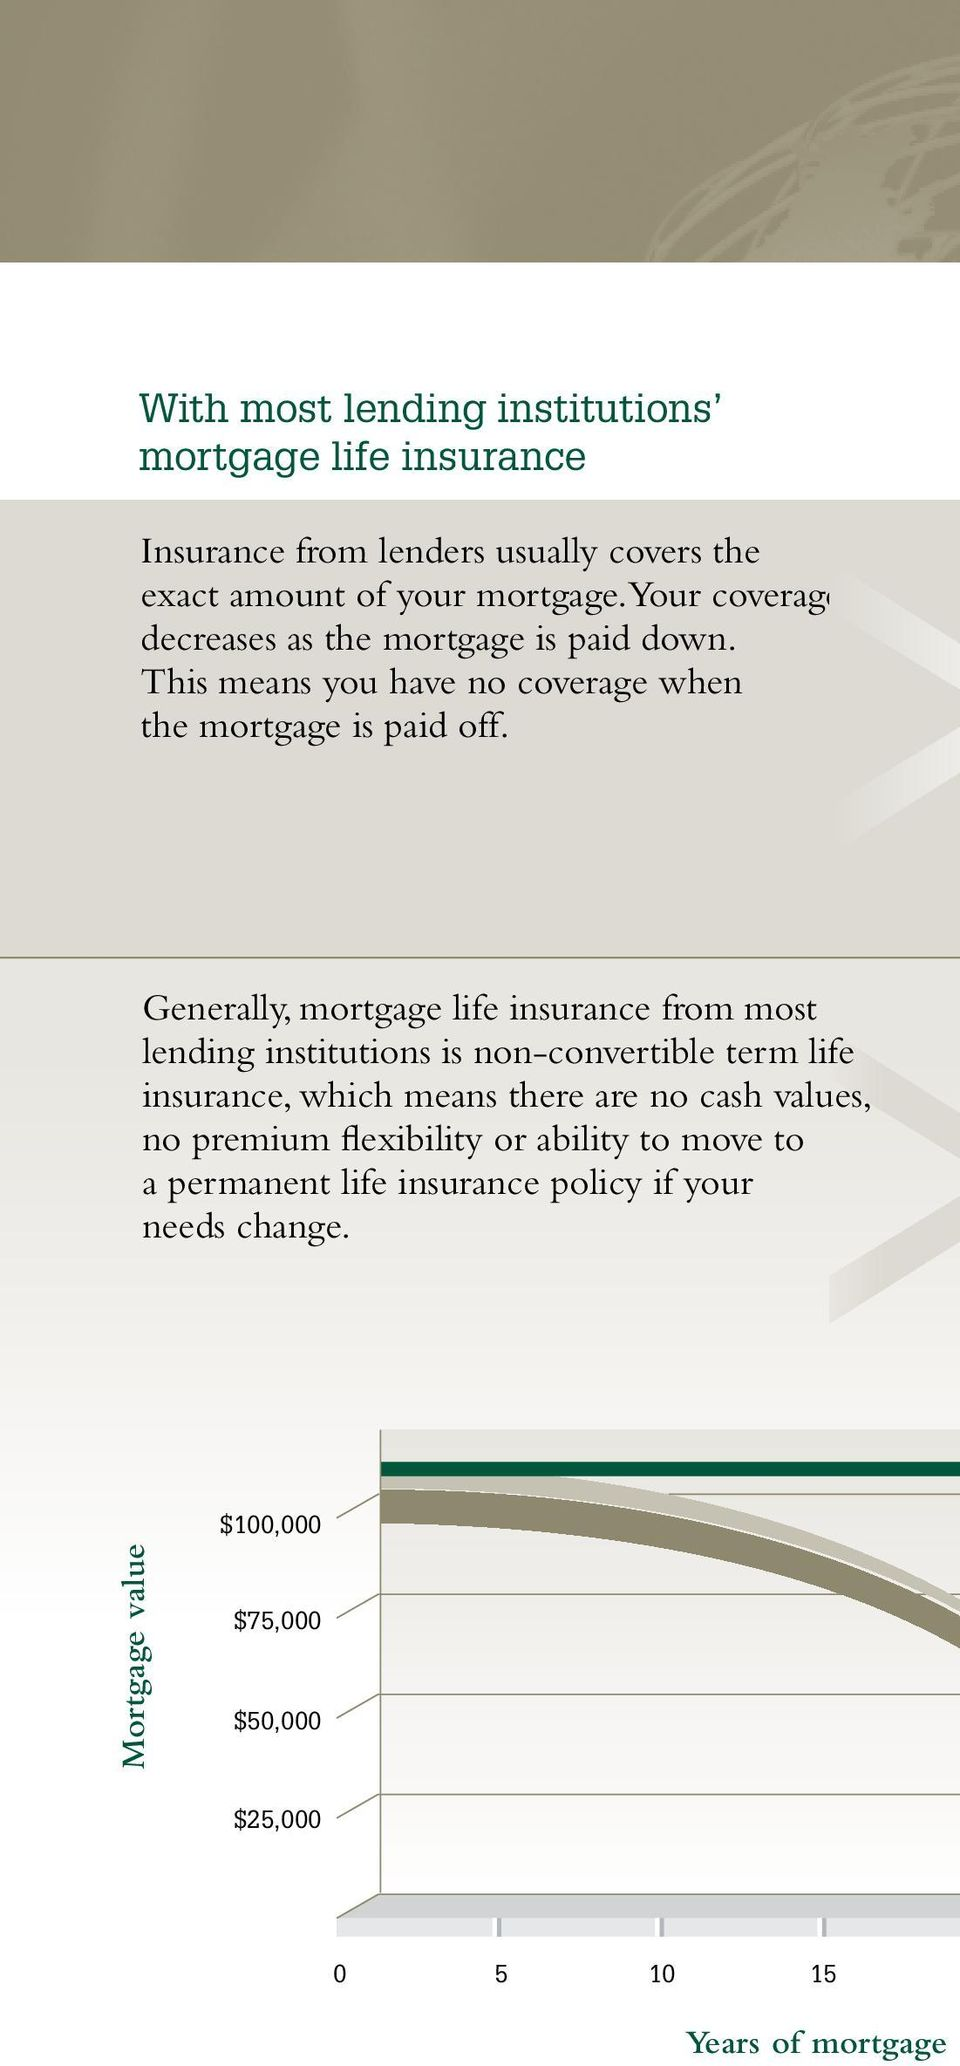 Generally, mortgage life insurance from most lending institutions is non-convertible term life insurance, which means there are no cash